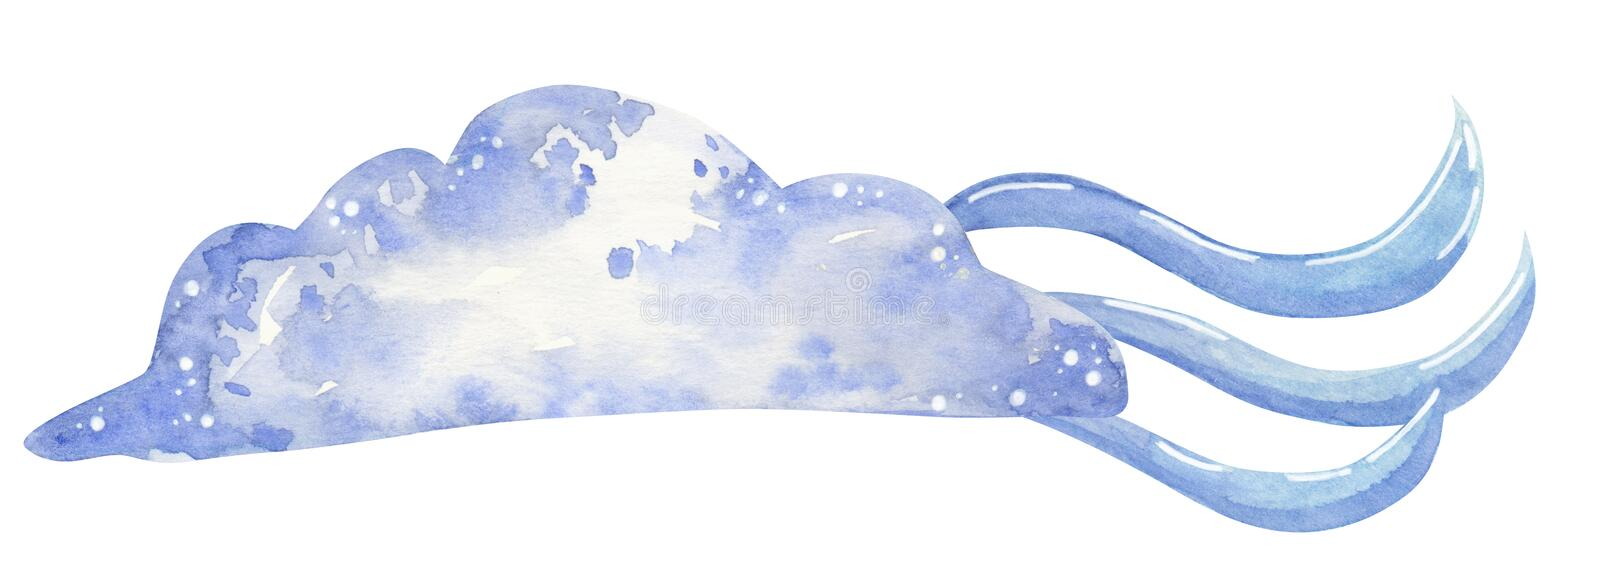 Watercolor cloud with wind, hand drawn watercolor illustration royalty free stock photography